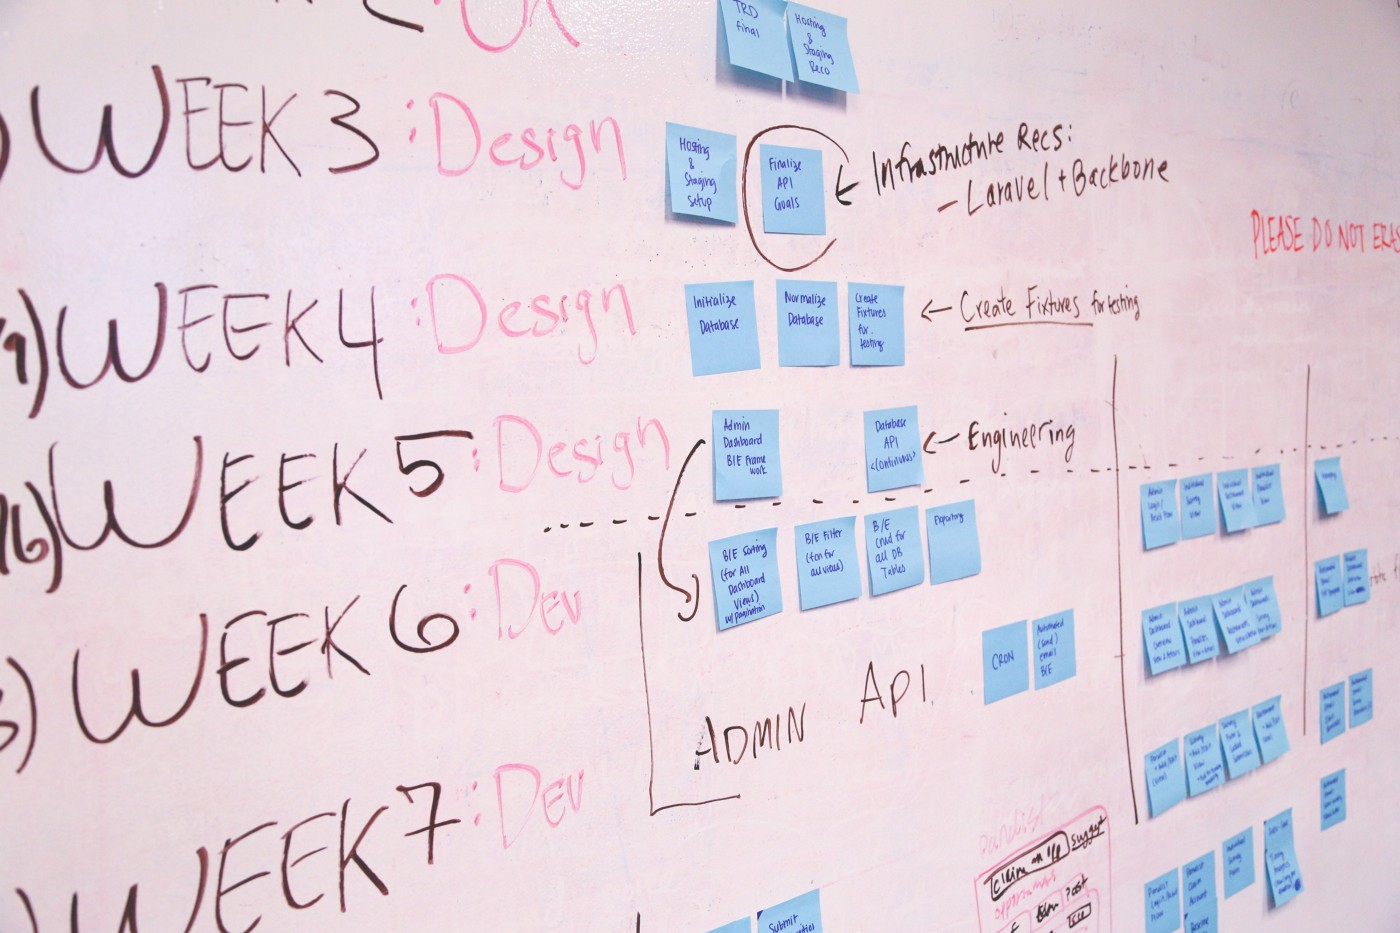 white-board-with-weeks-and-blue-post-it-tasks.